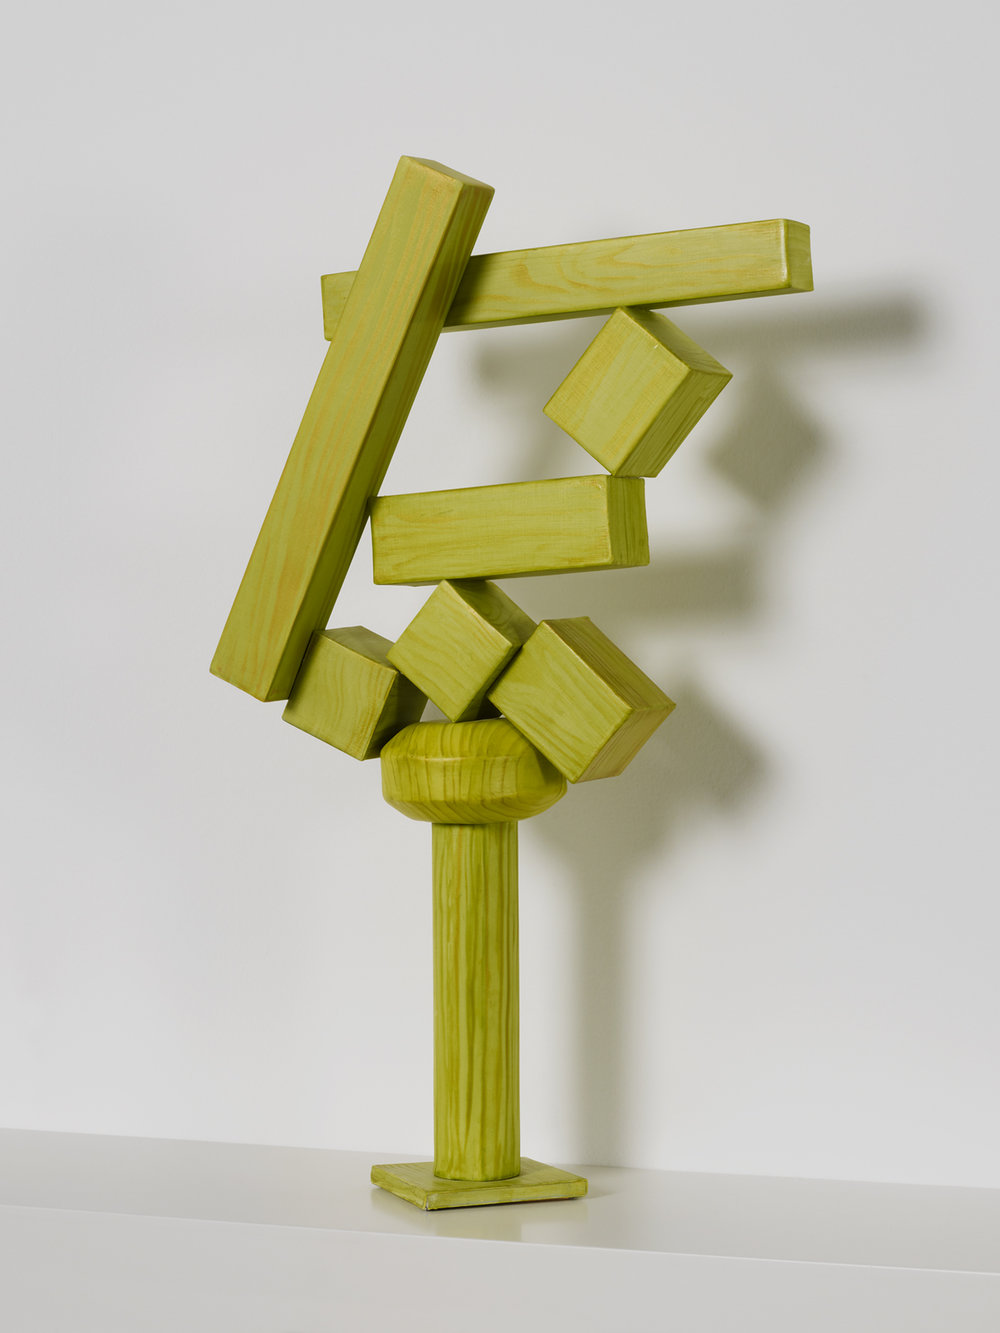 Old enough to repaint but young enough to sell (Cubi XVIII) , 2011, paper, acrylic, wooden armature, 18 5/8 x 11 1/2 x 4 1/2 inches